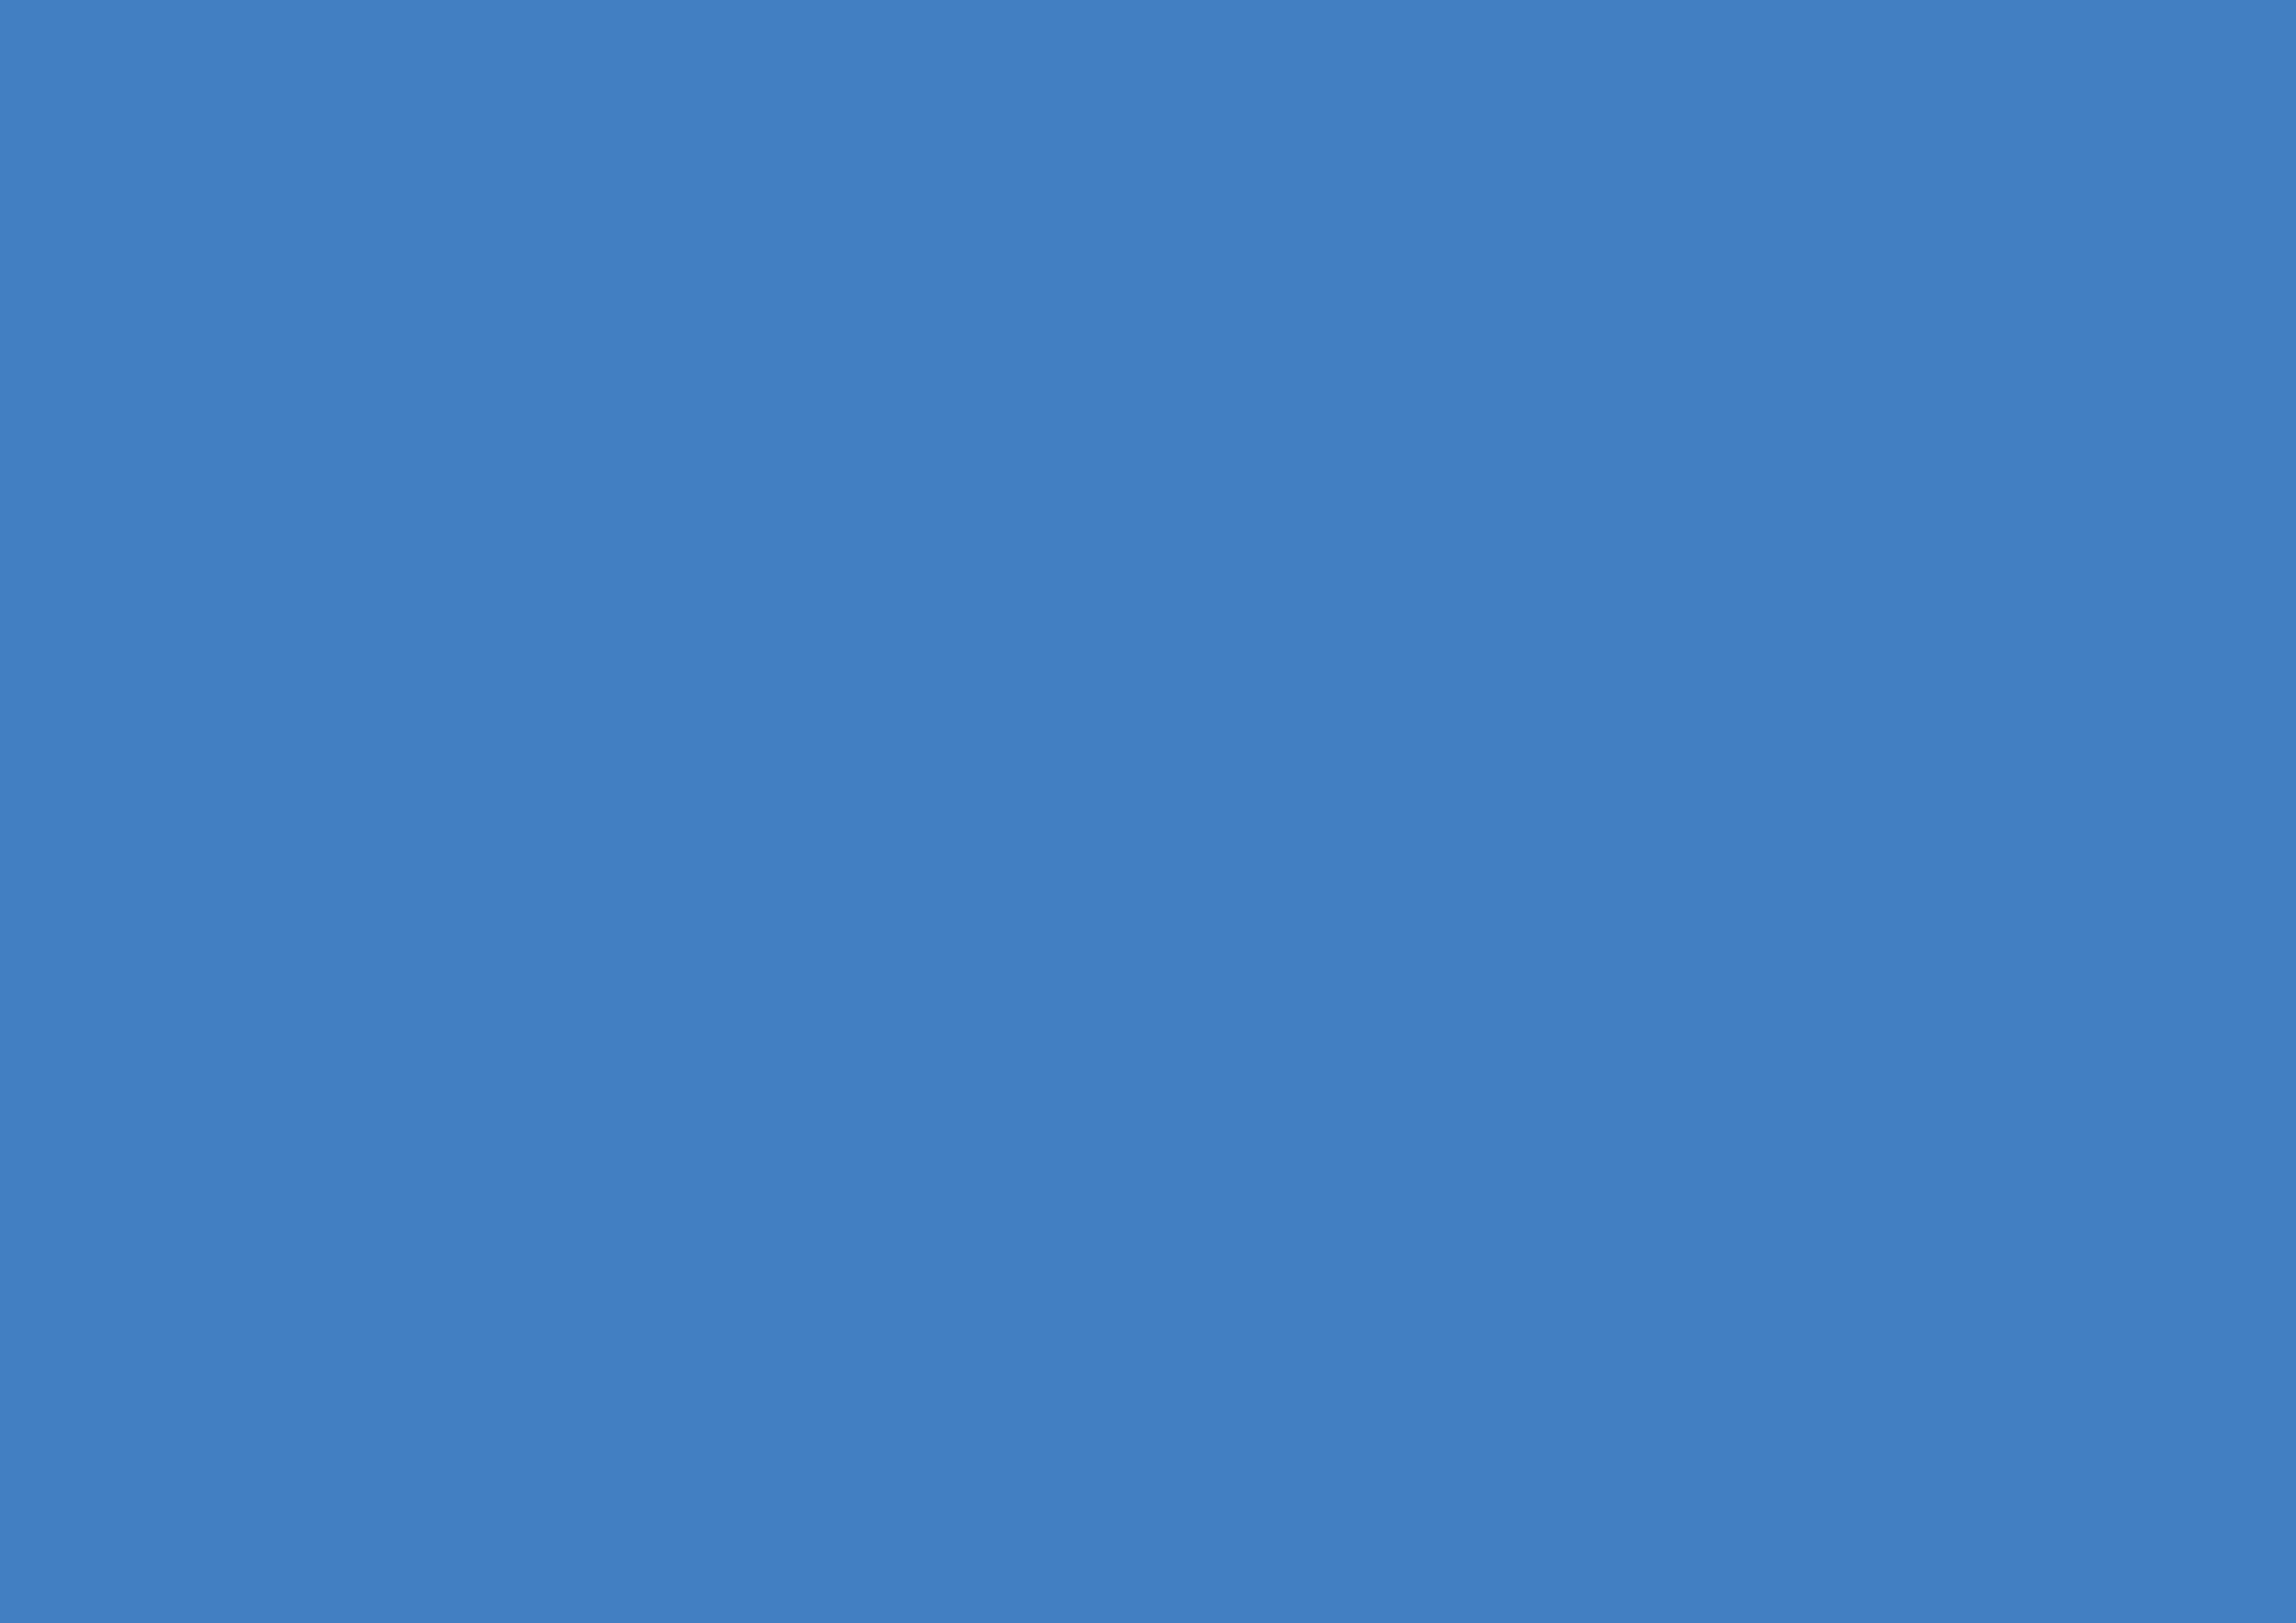 3508x2480 Tufts Blue Solid Color Background